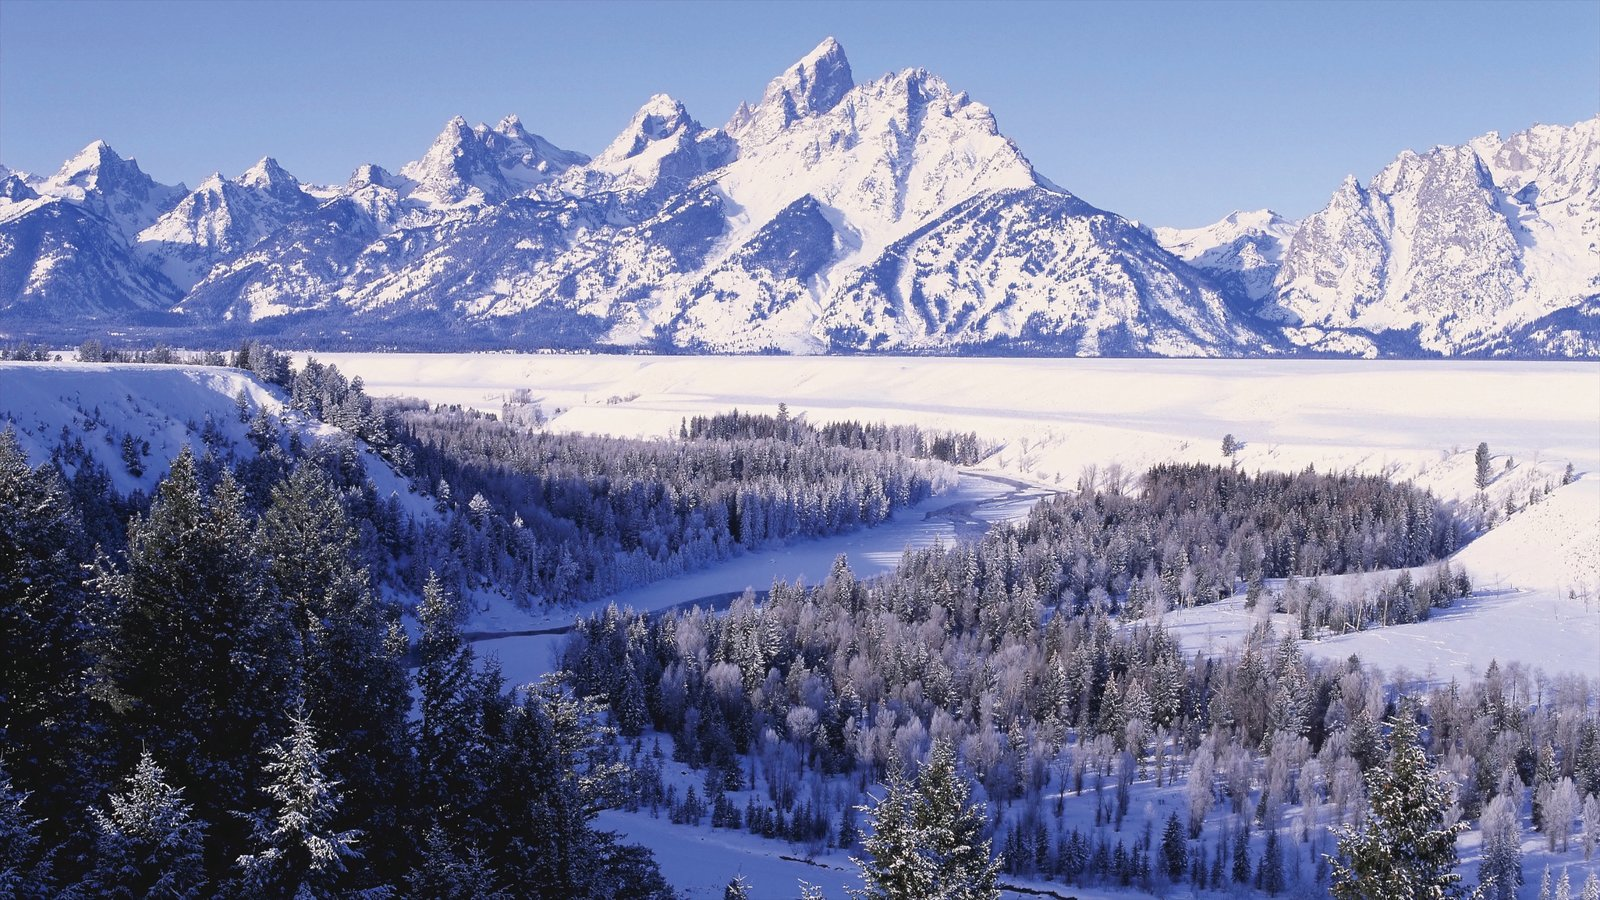 Jackson Hole which includes snow, landscape views and mountains